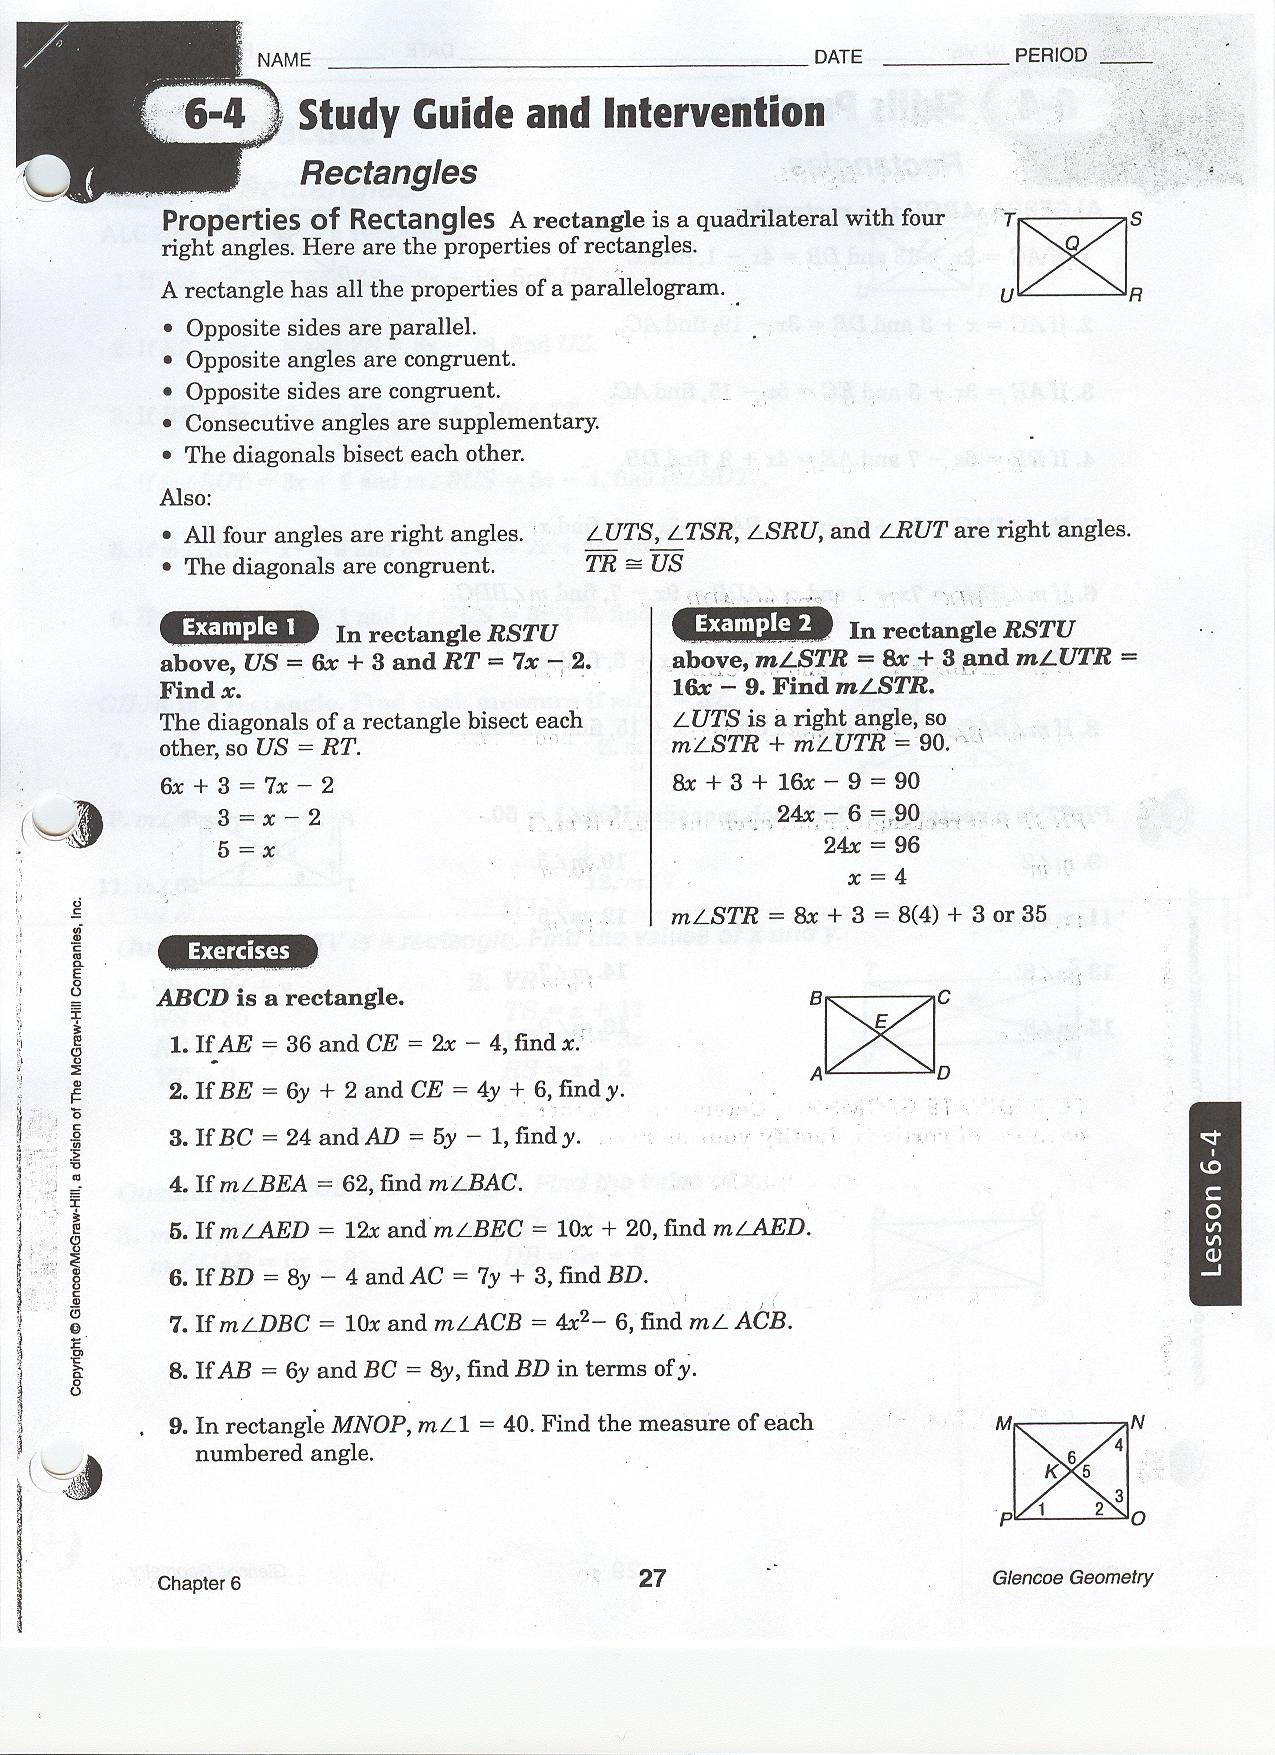 worksheet Properties Of Parallelograms Worksheet quia class page geometry period 4 homework rectangle wksht 6 p